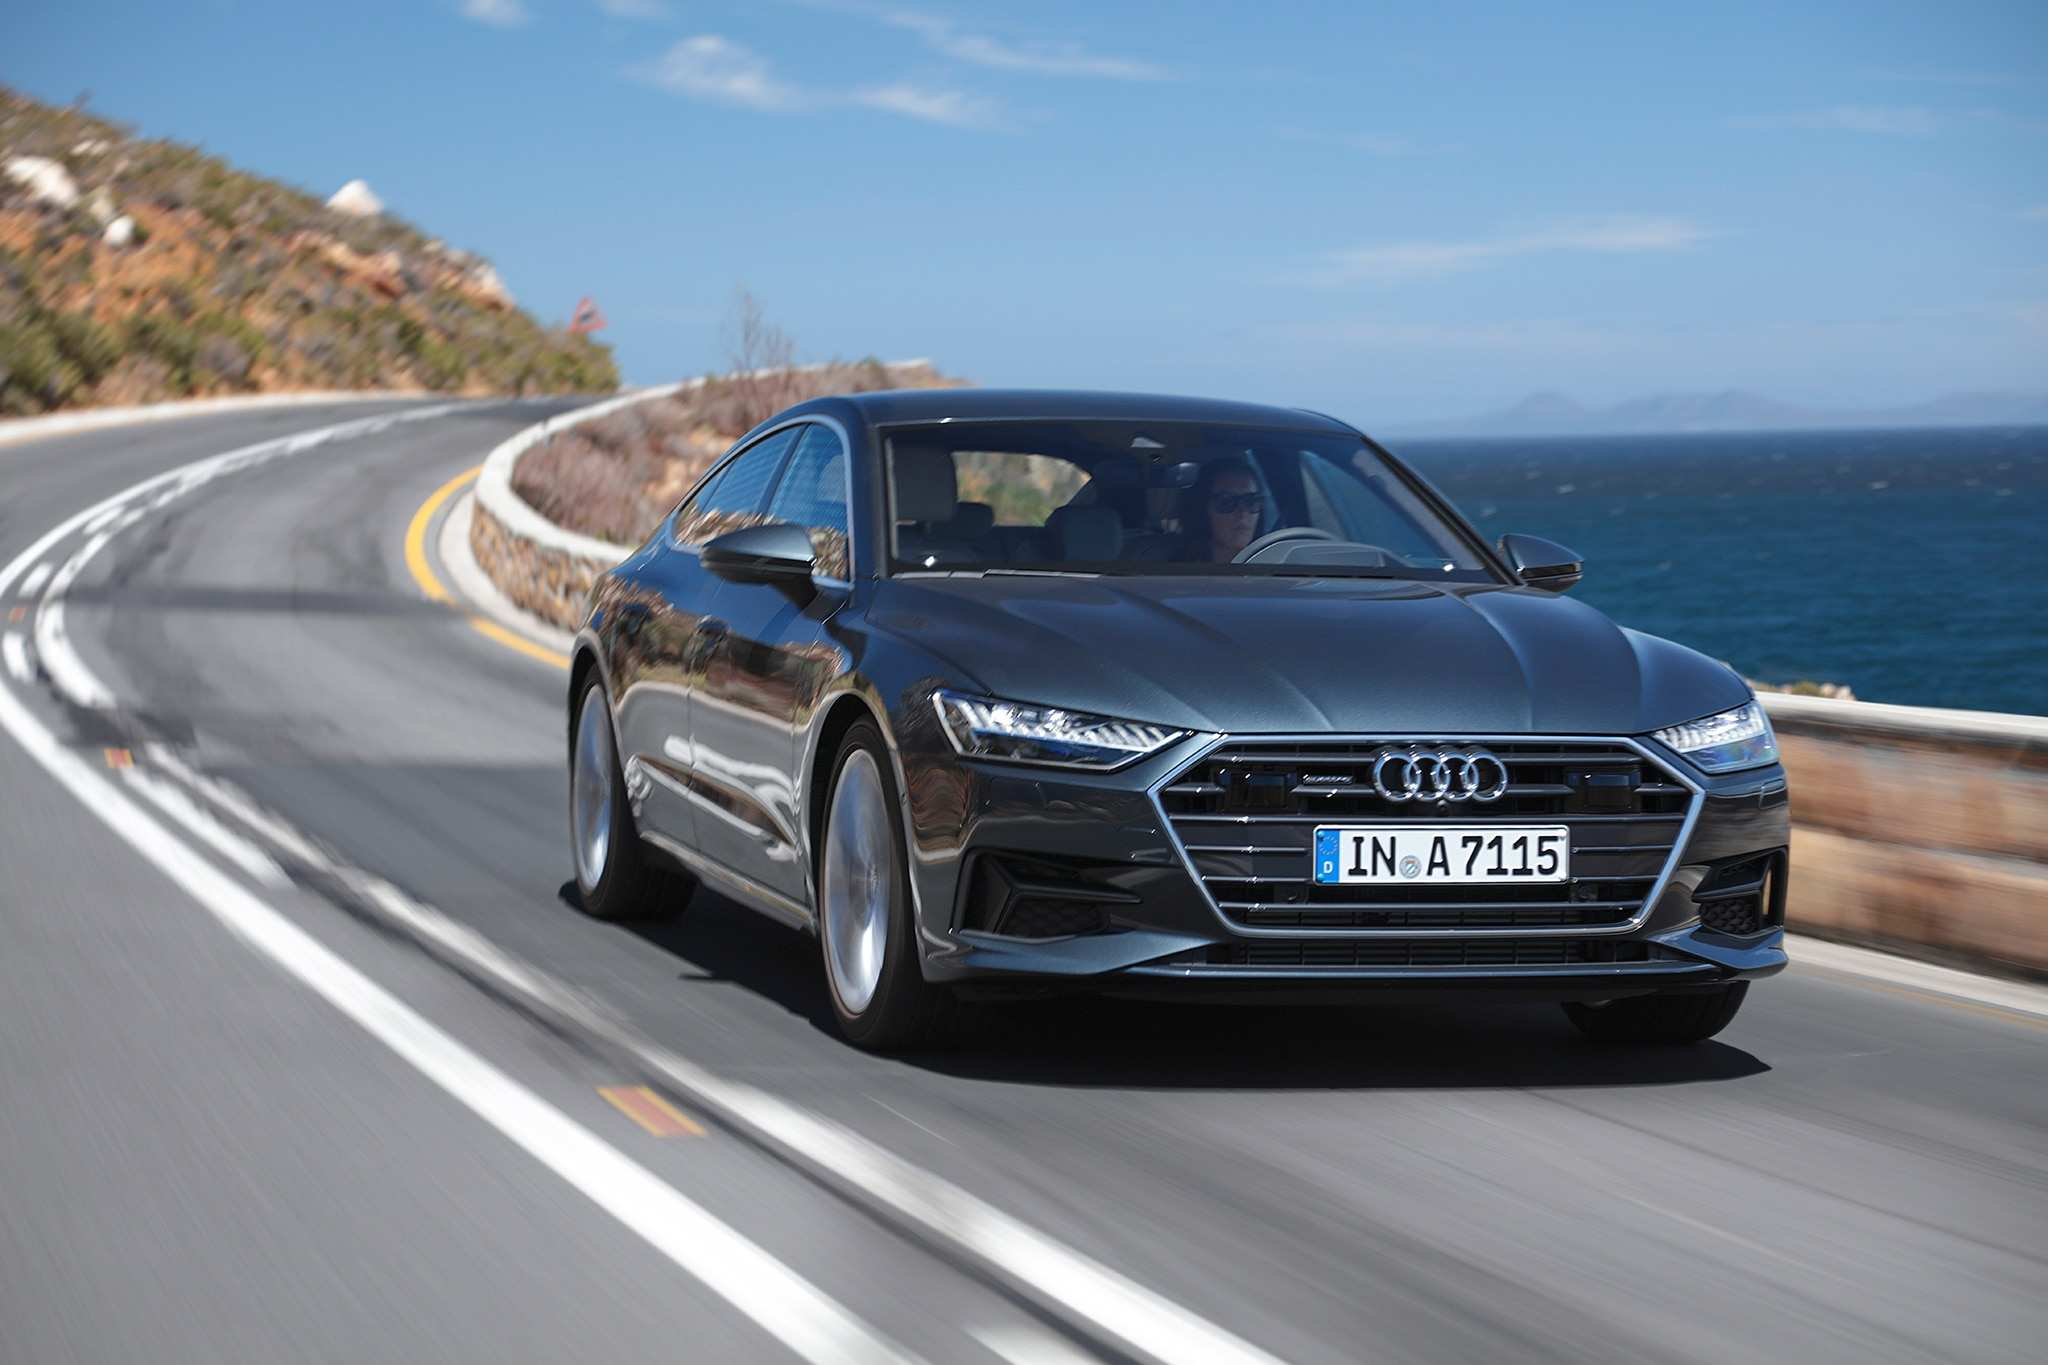 45 Best Review 2019 Audi A7 Release Date First Drive by 2019 Audi A7 Release Date